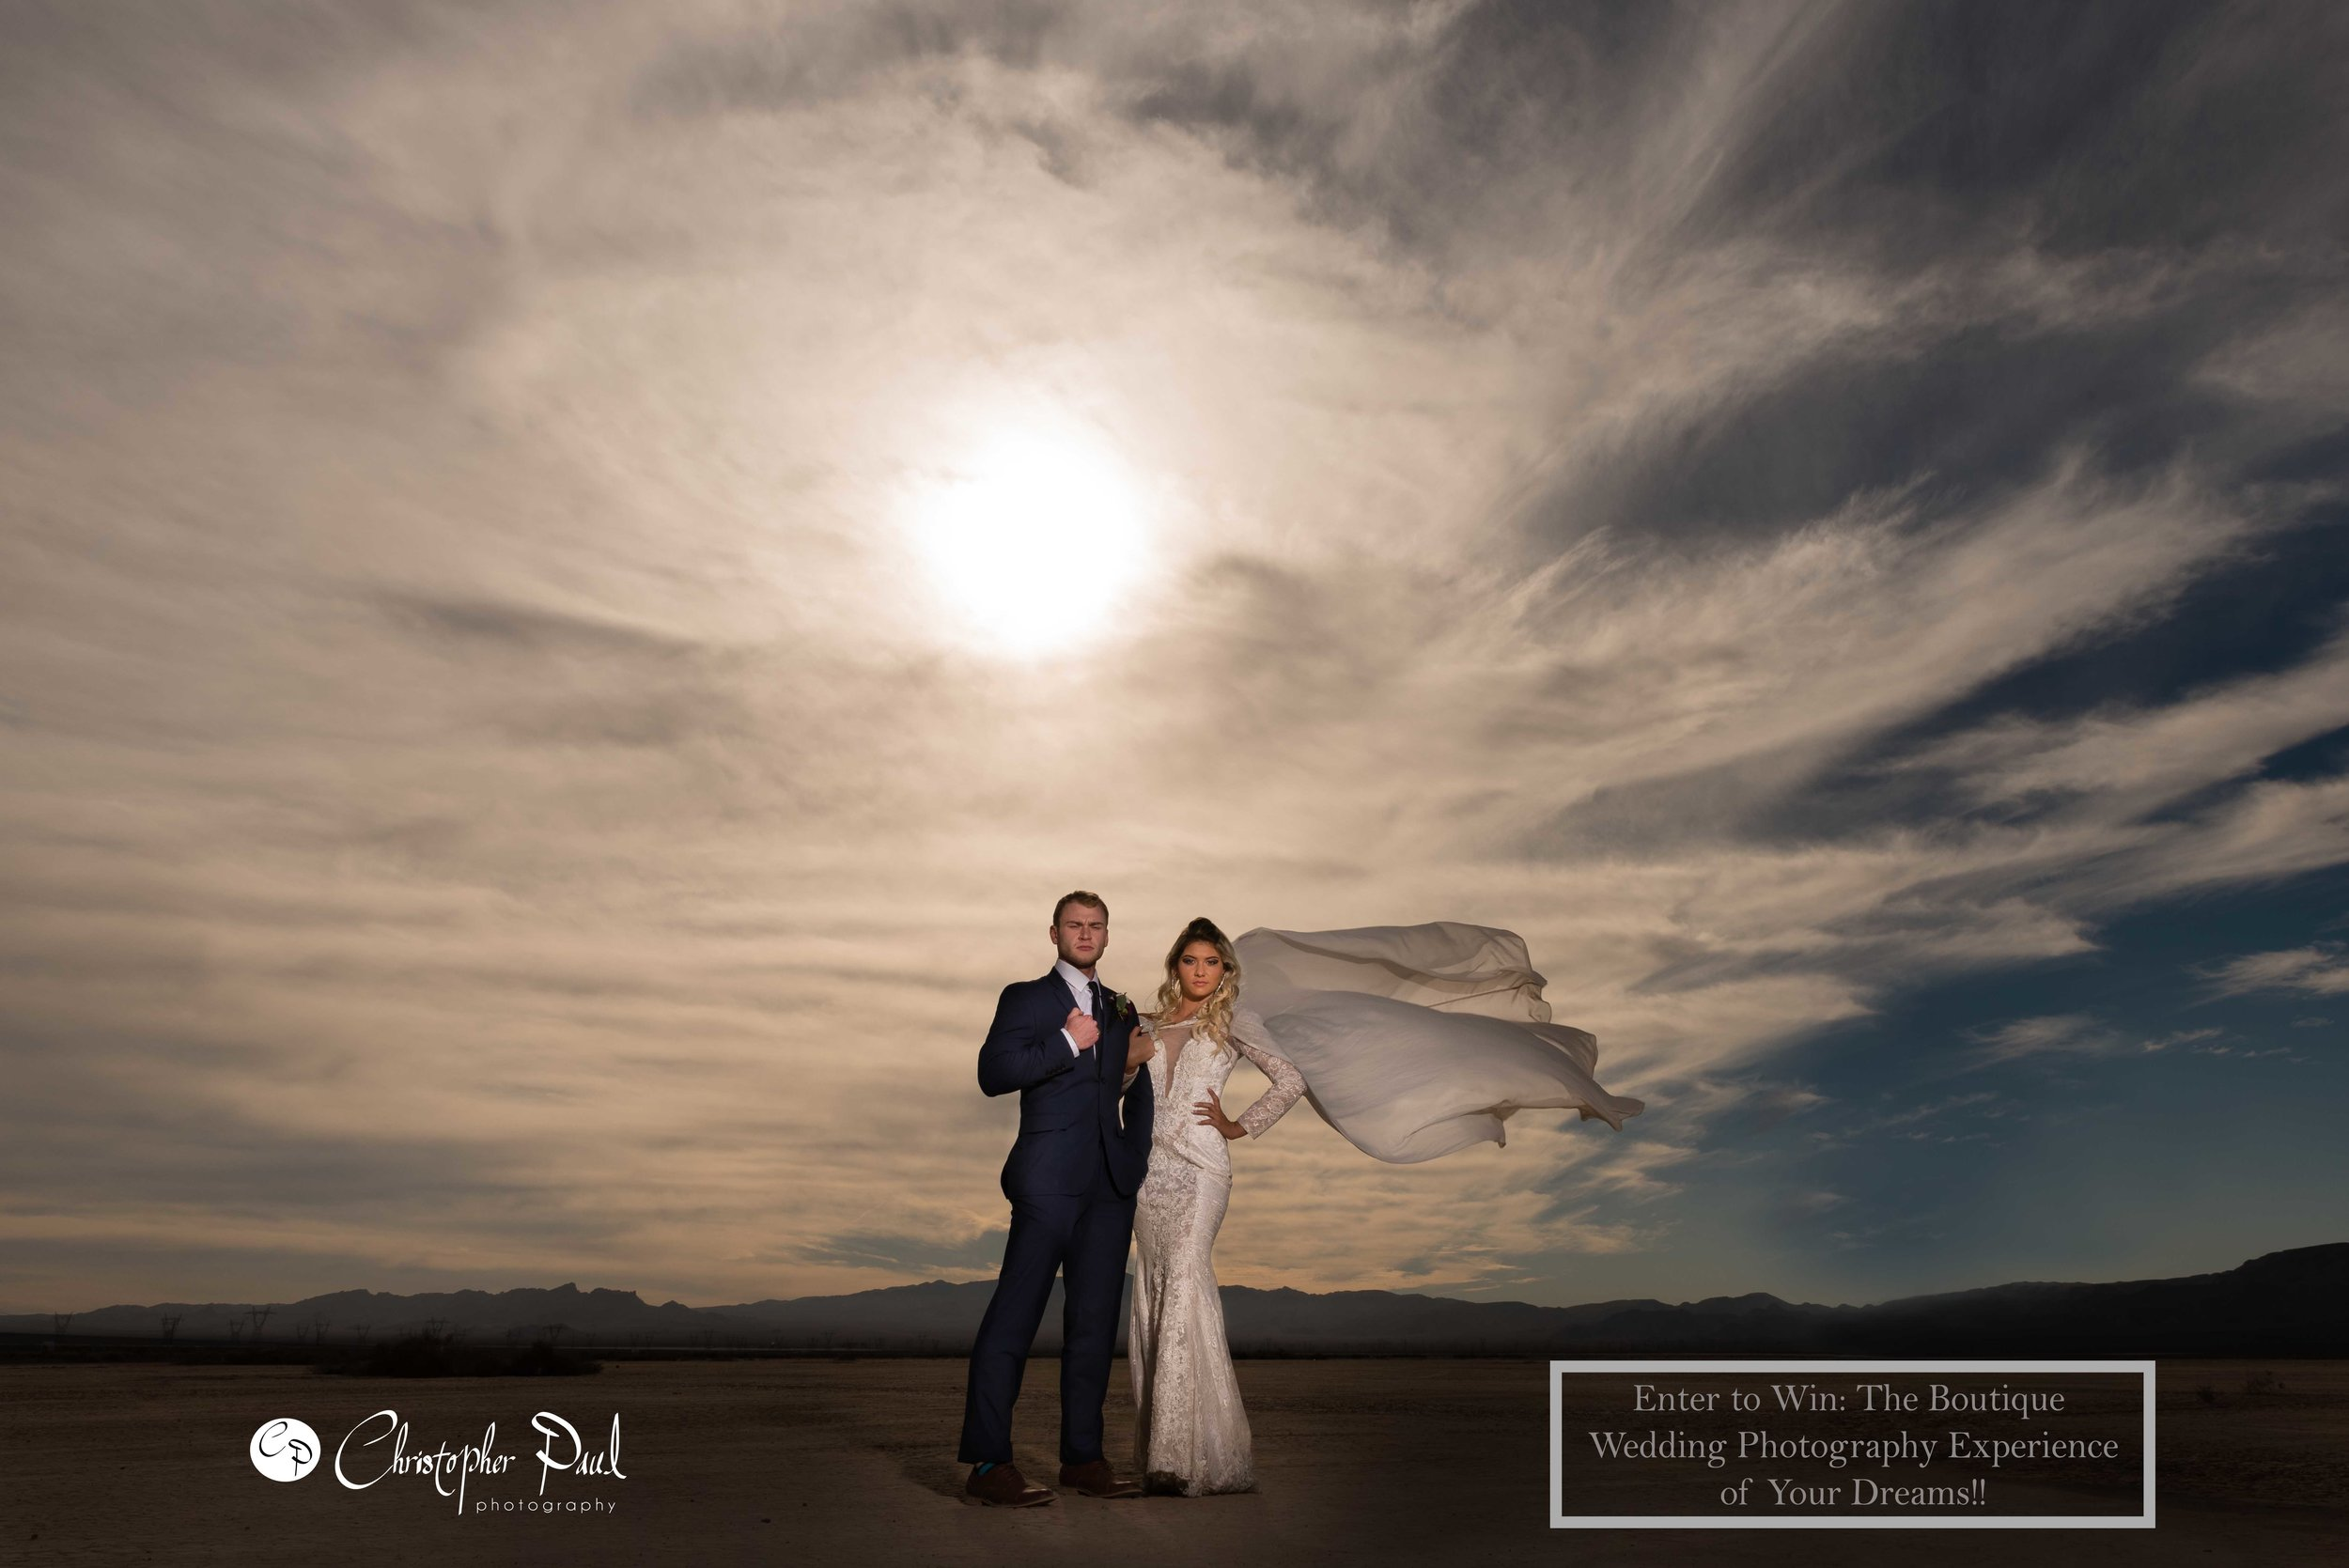 CPP Wedding photography giveaway 3